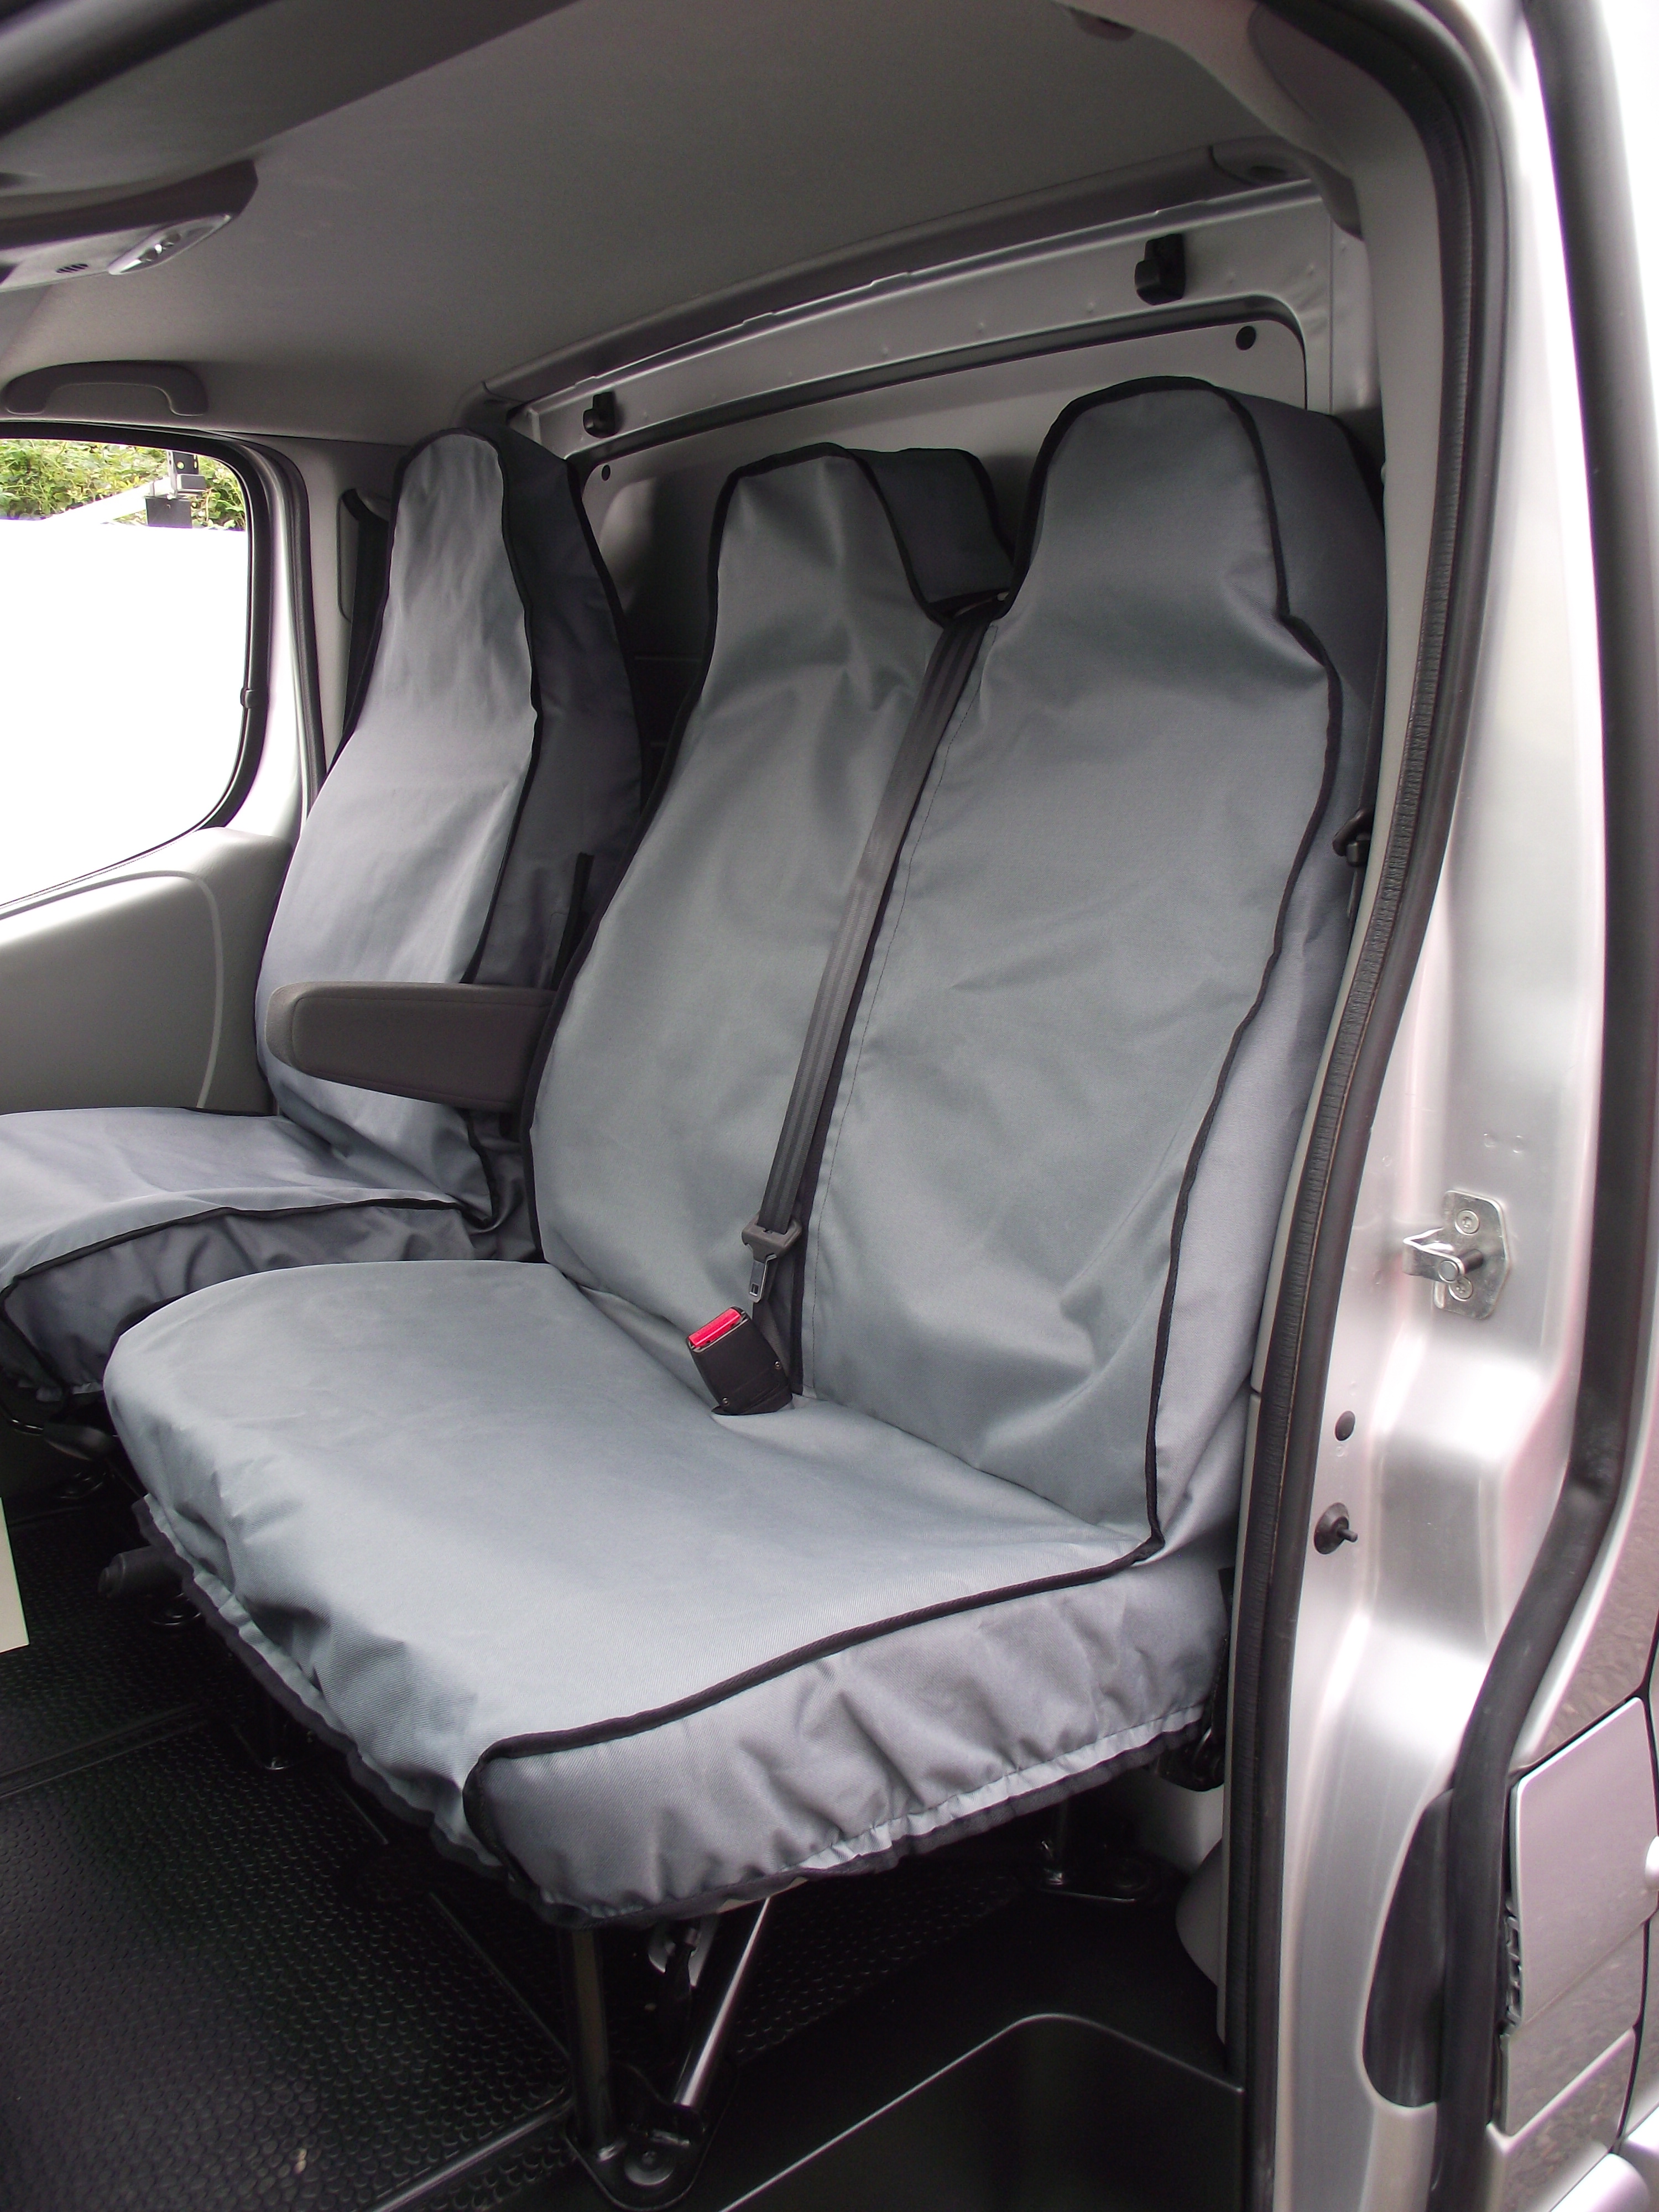 Titan Waterproof Car Front Seat Covers with Armrest Holes to fit Skoda Superb 2016 Onwards Black